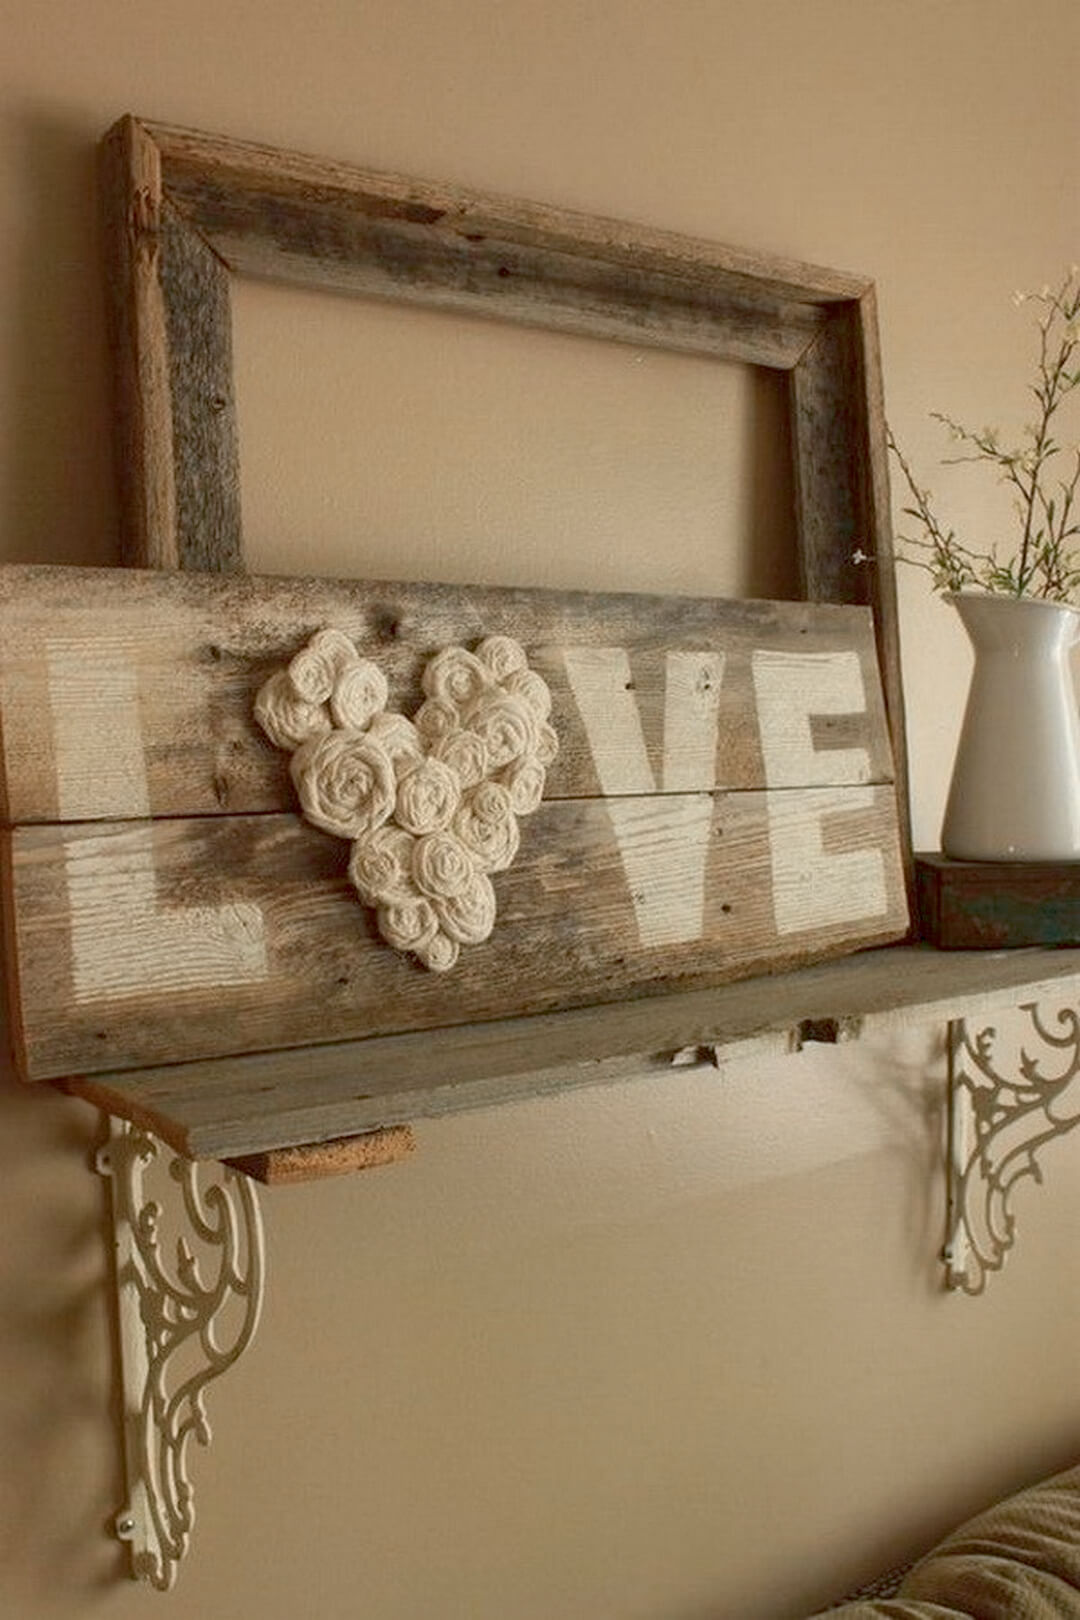 14 rustic love wood signs ideas homebnc.jpg